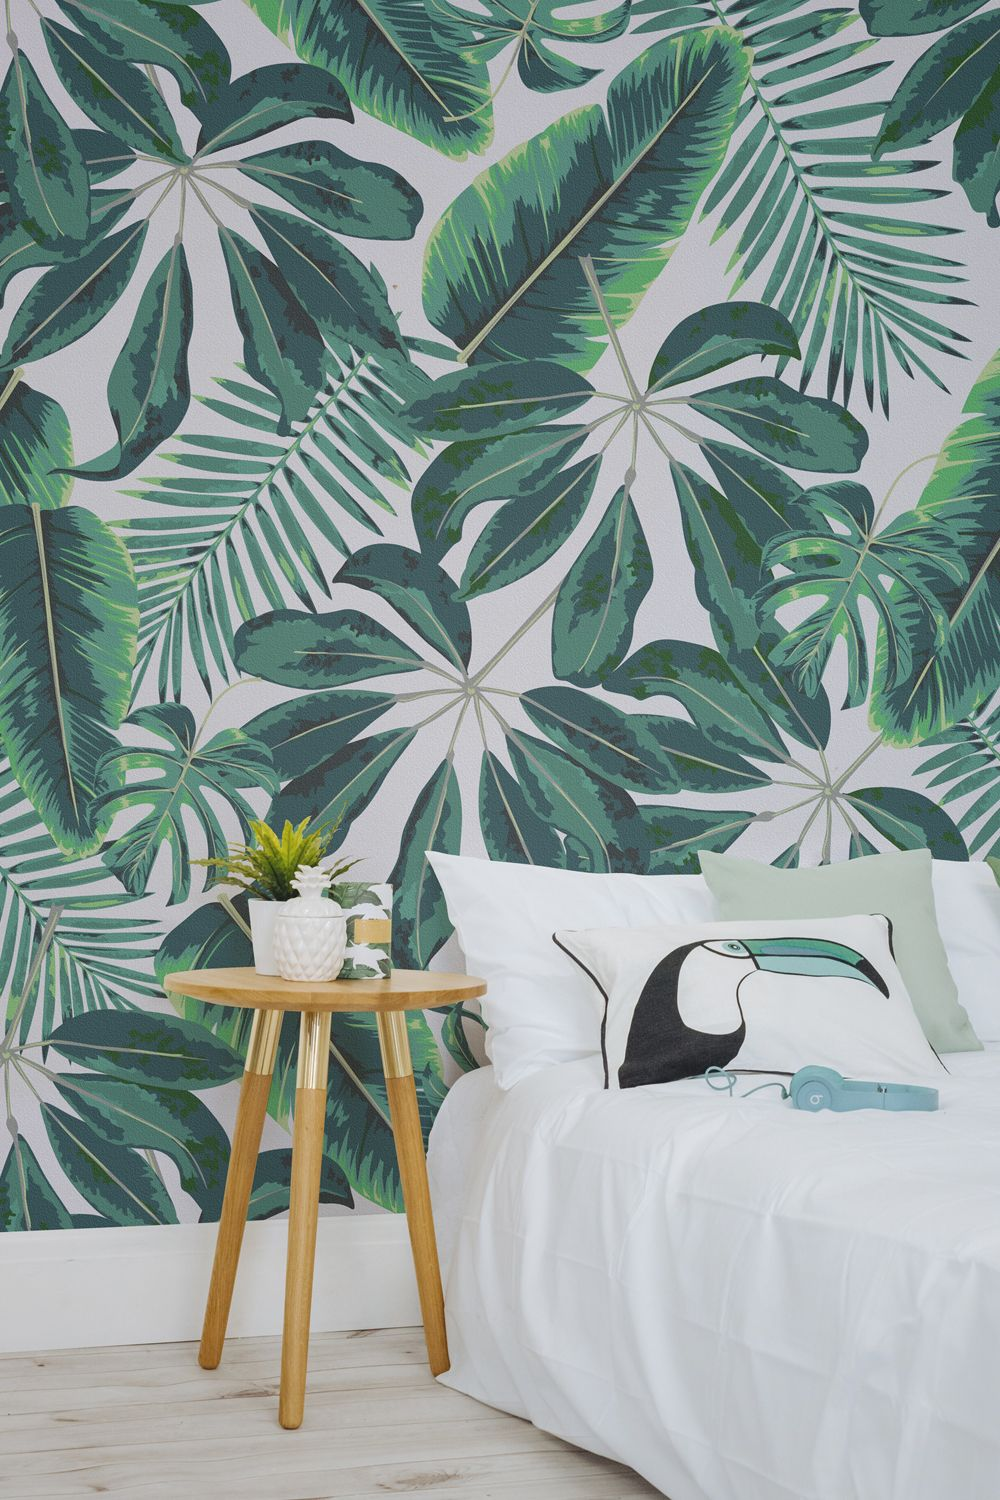 Go Bold Or Home With This Statement Tropical Wallpaper Showcasing A Selection Of Beautiful Leaves Against An Ivory White Background For Maximum